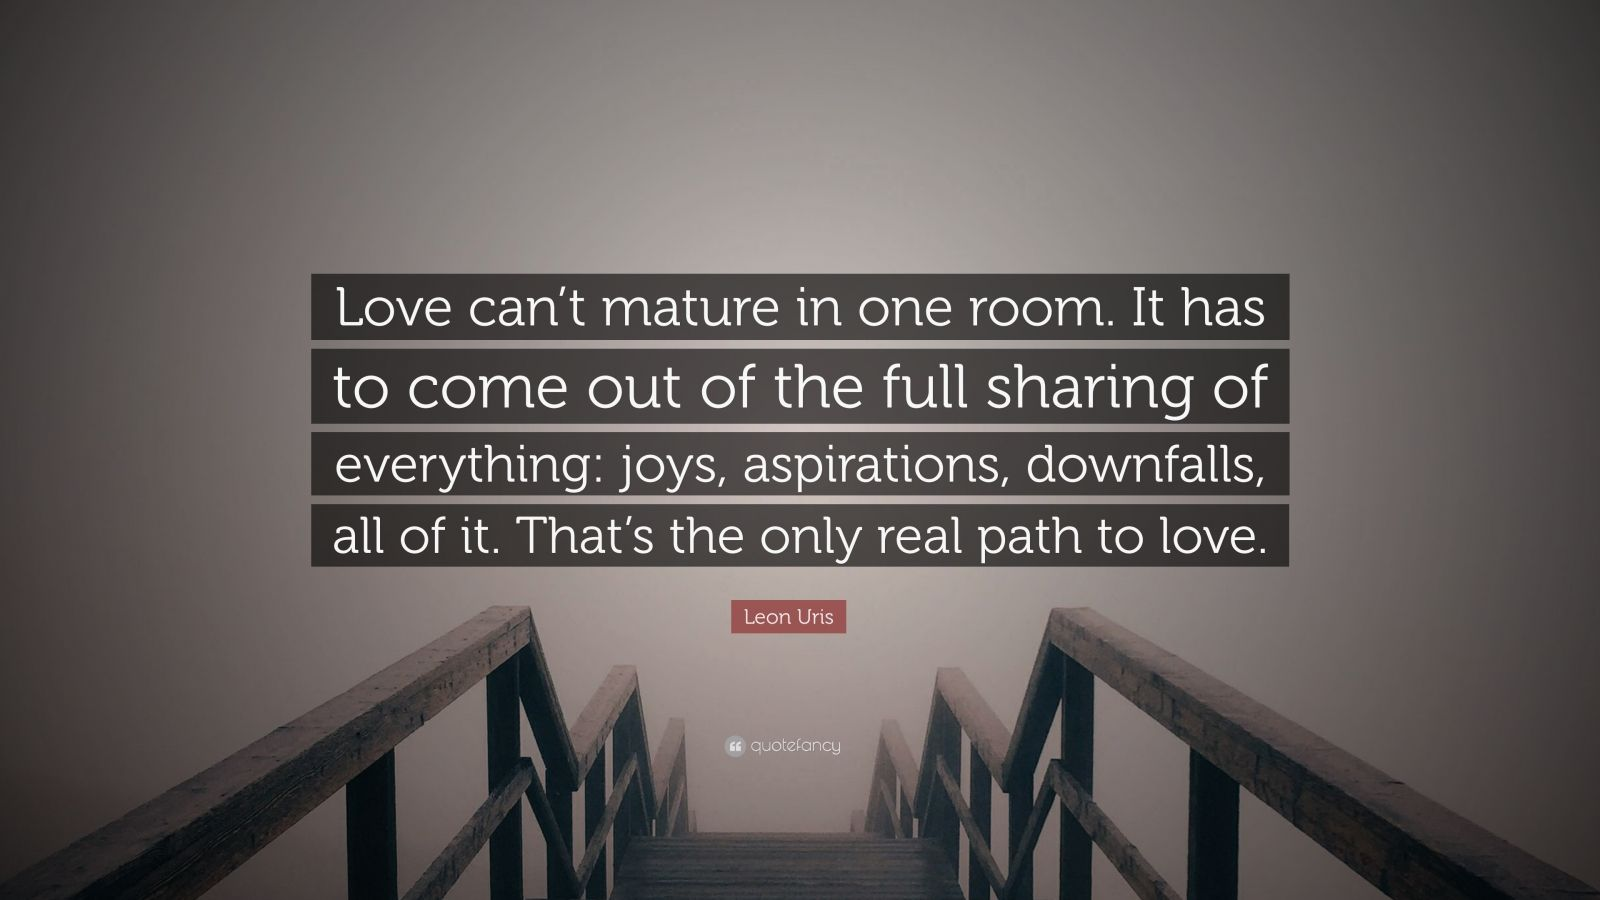 """Leon Uris Quote: """"Love can't mature in one room. It has to come out of the full sharing of everything: joys, aspirations, downfalls, all of it. That's the only real path to love."""""""